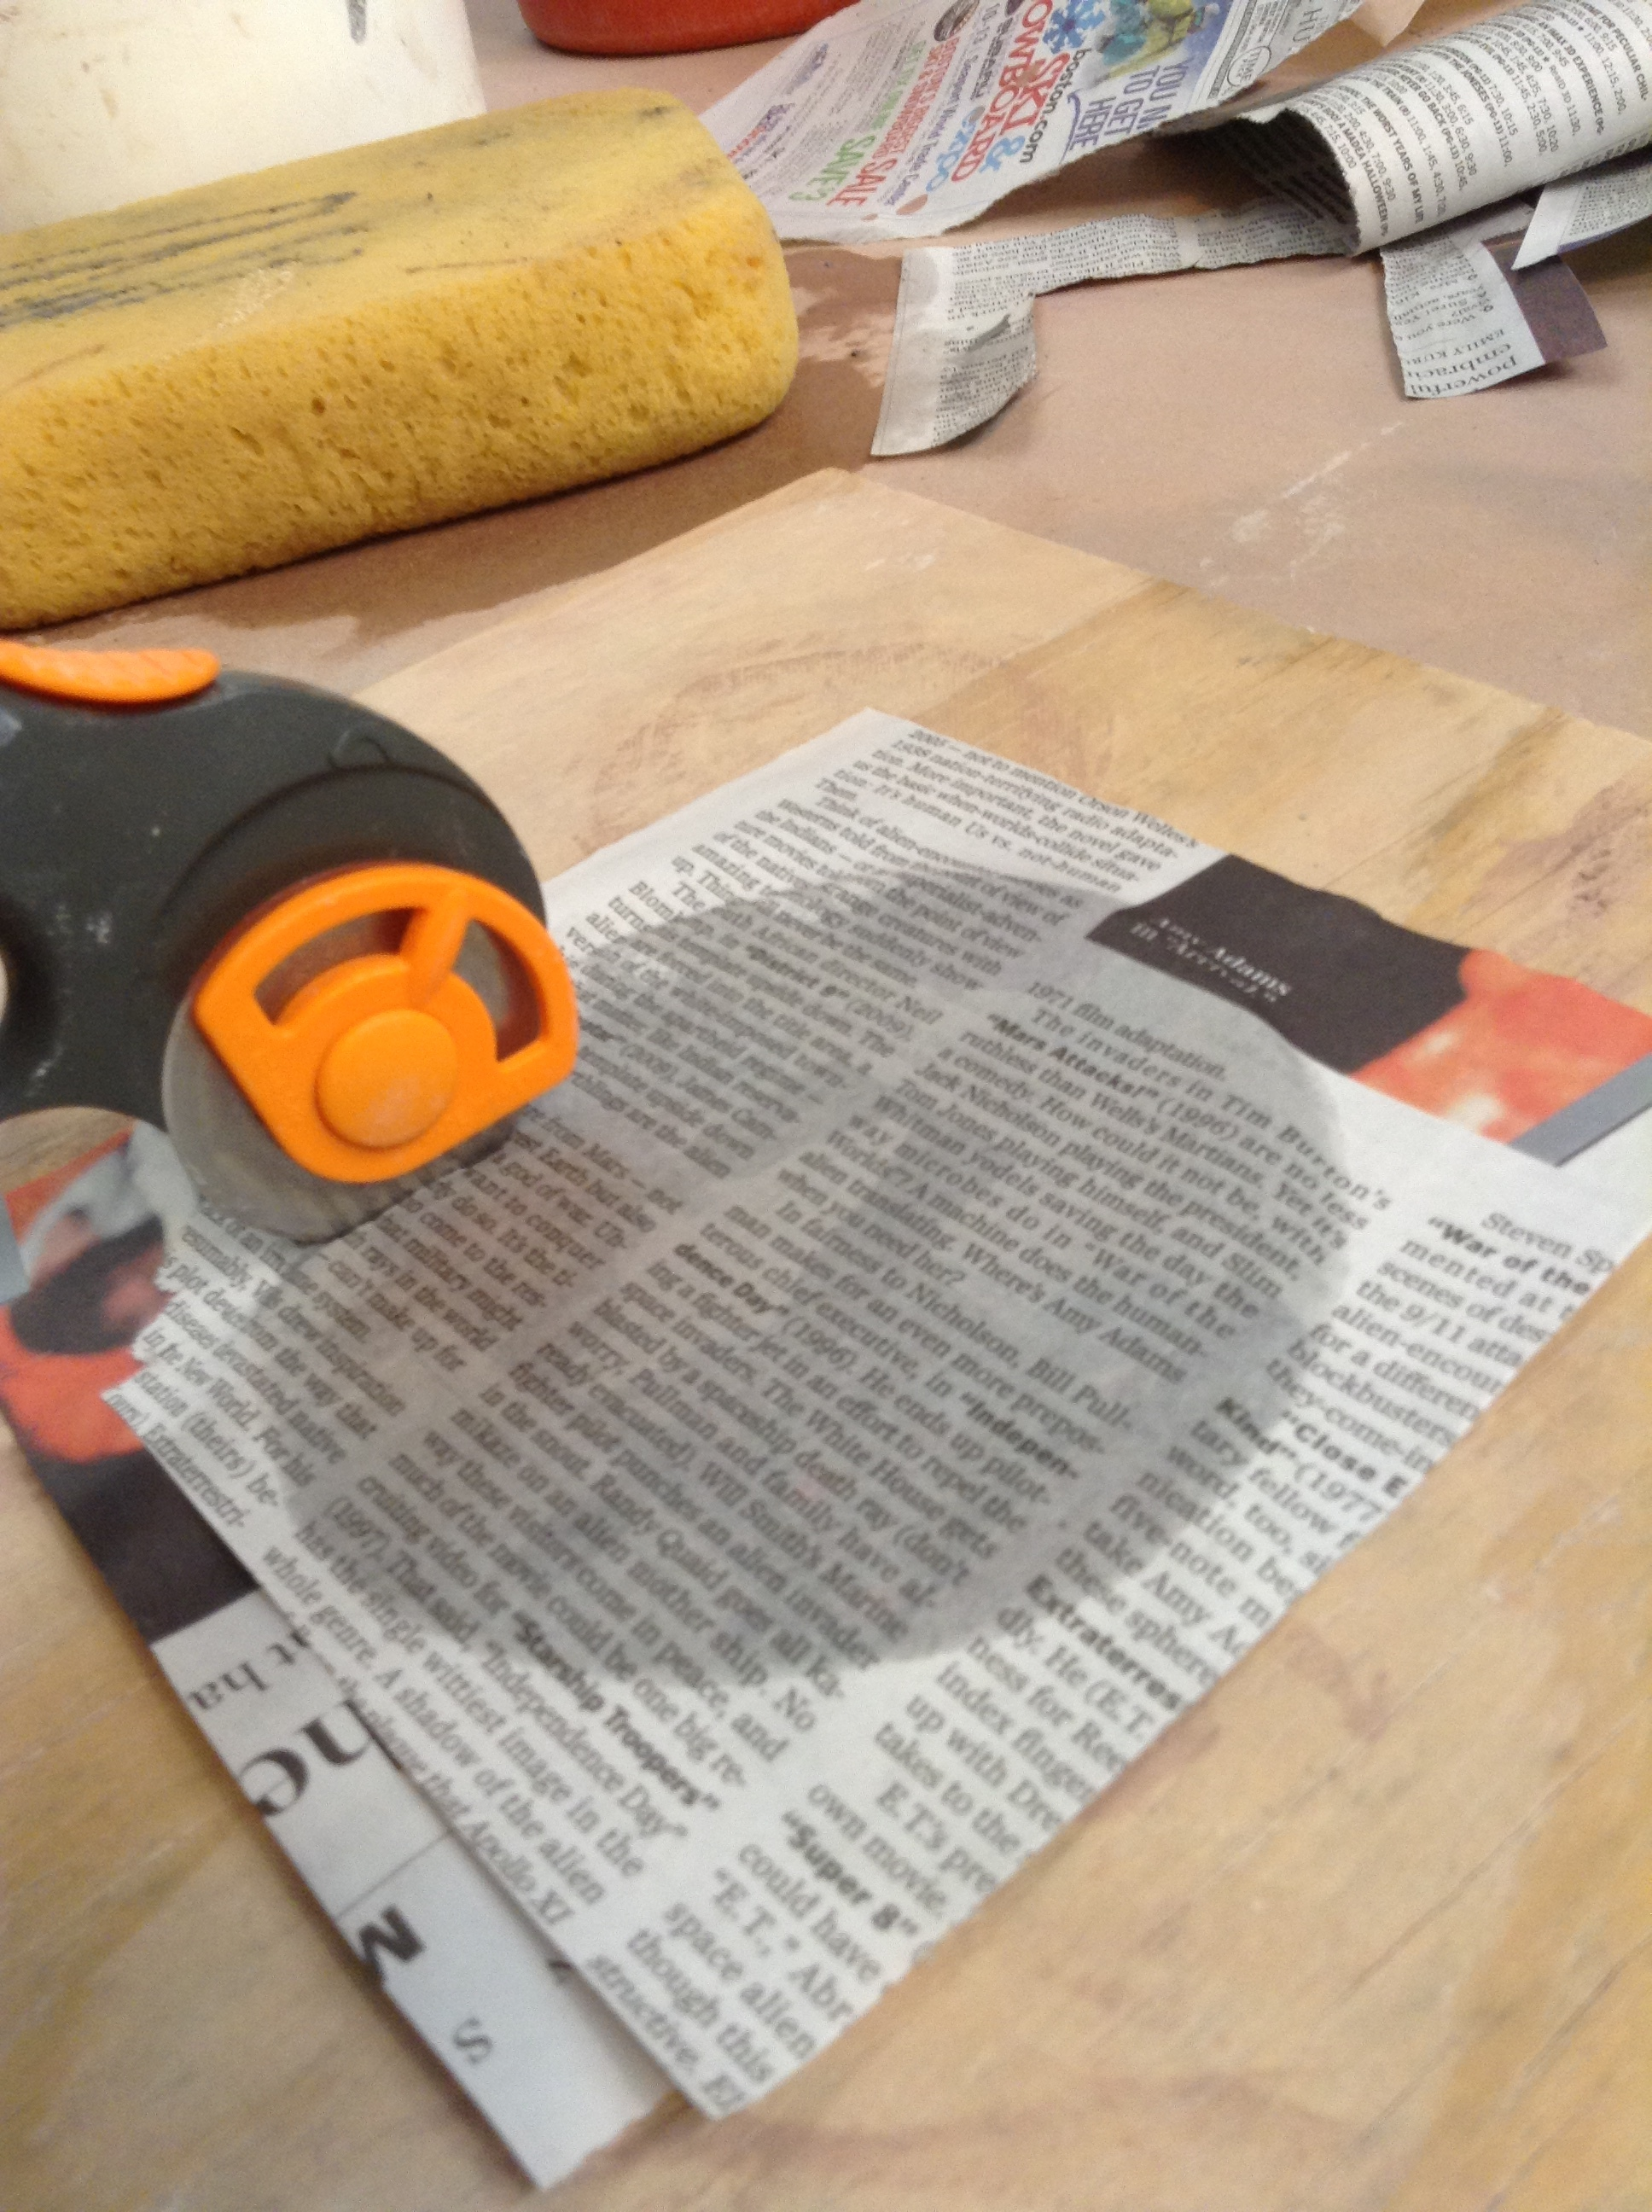 The fabric rotary cutter shown here makes good cuts, but seemed to get dull quickly. This laminate is certainly not official rotary cutting material. Soon afterward I experimented with making cuts with plain scissors and liked it much better.